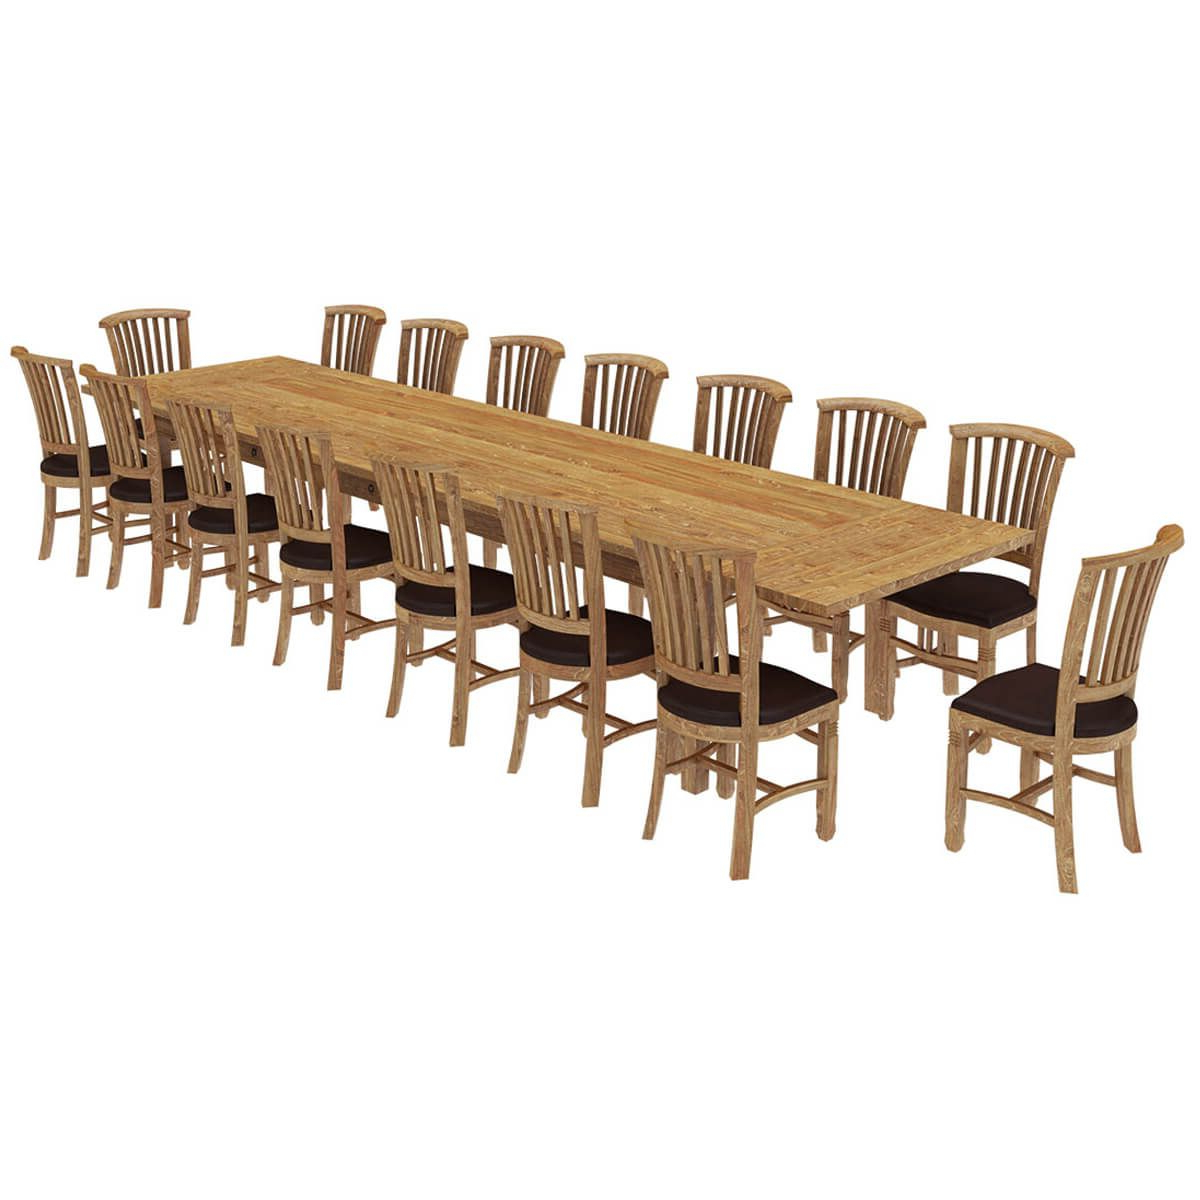 Brussels Reclaimed Wood 17 Piece Large Extendable Dining in Well-liked Brussels Reclaimed European Barnwood Dining Tables